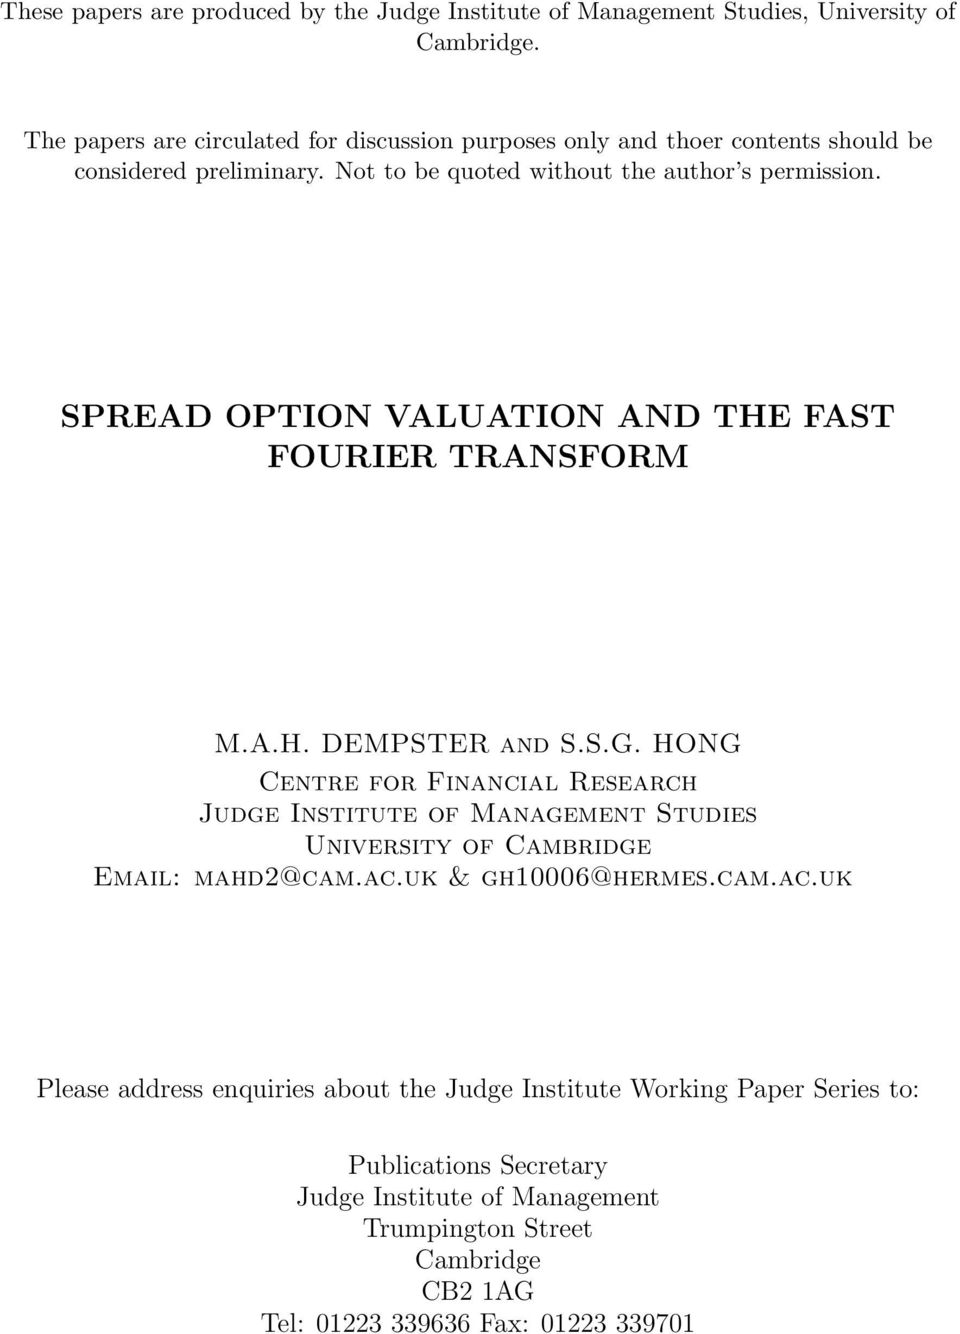 SPREAD OPTION VALUATION AND THE FAST FOURIER TRANSFORM M.A.H. DEMPSTER and S.S.G.